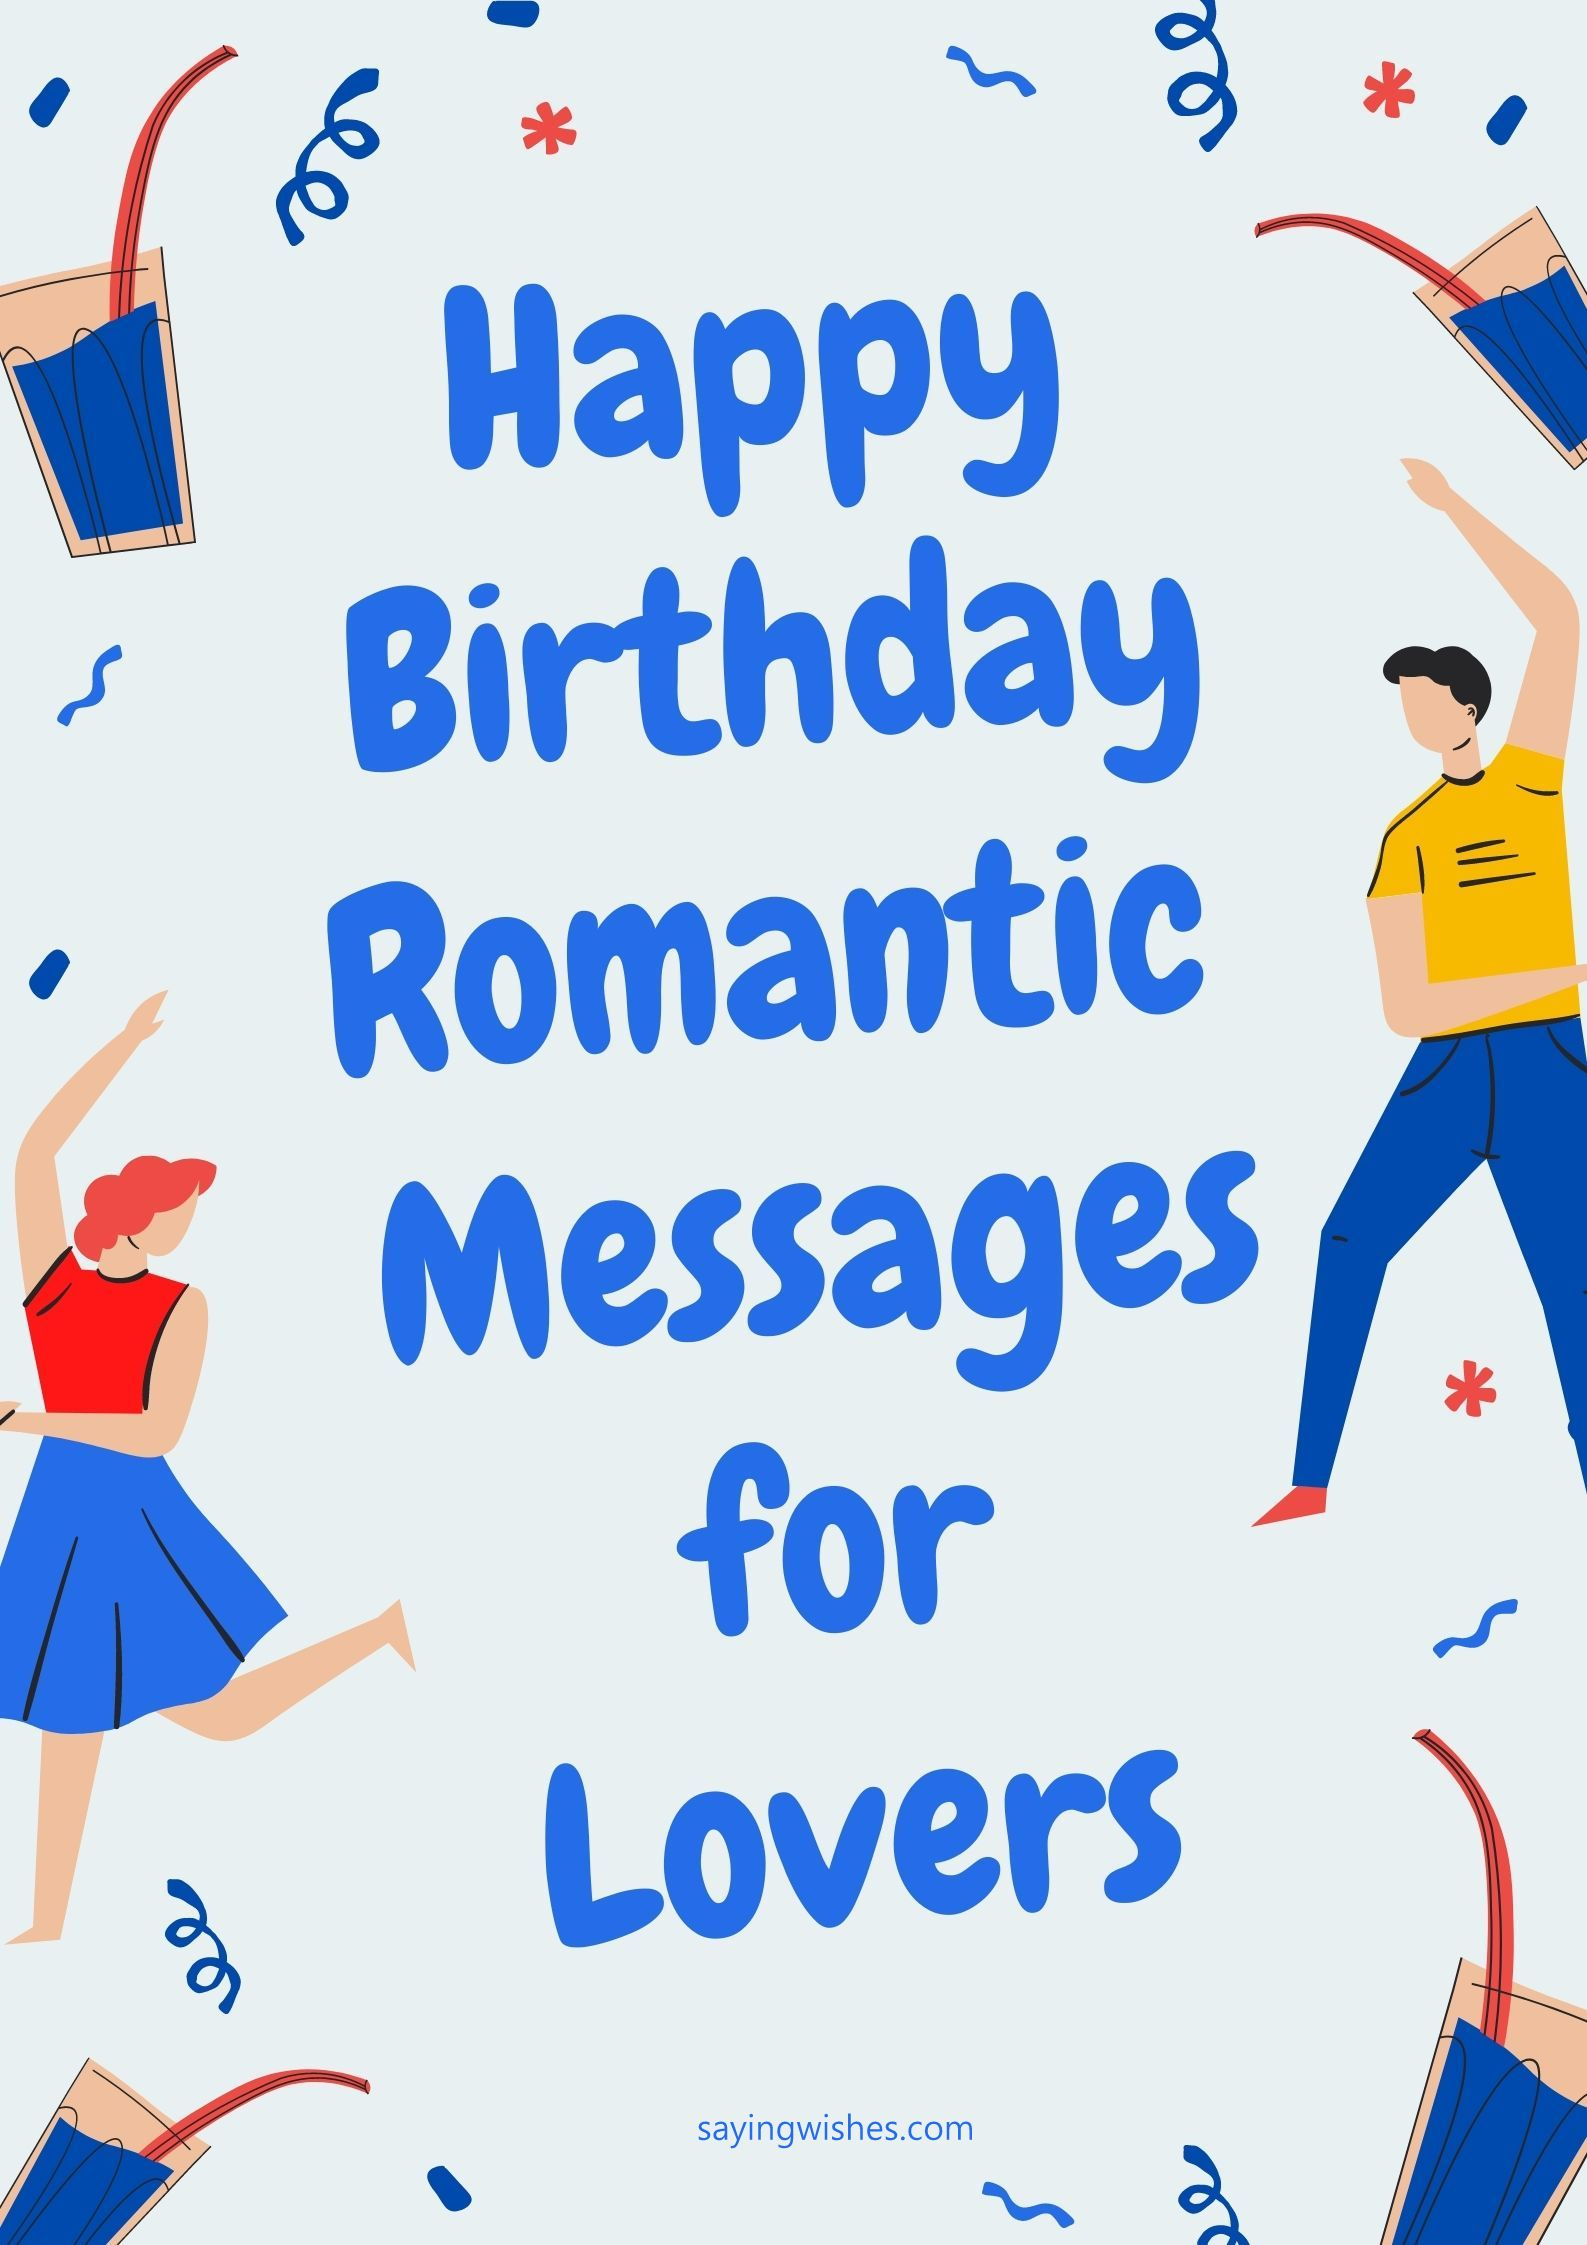 birthday romantic love messages for lovers